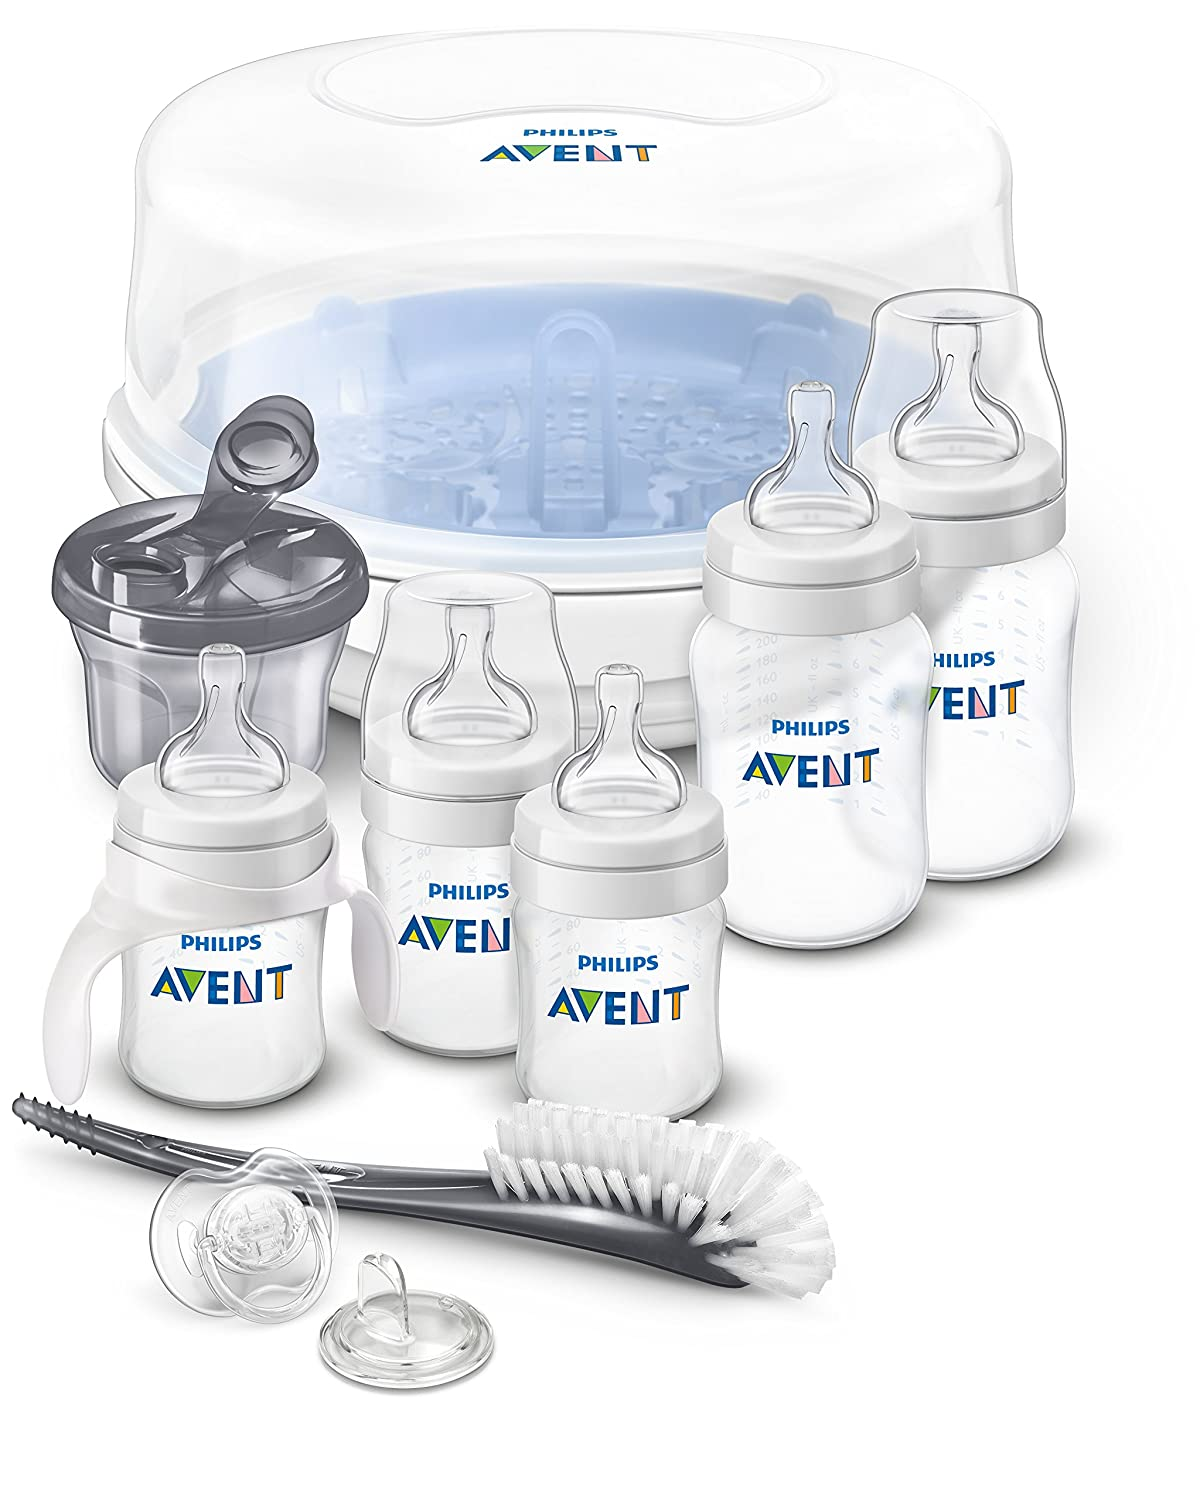 Philips AVENT Anti-Colic Bottle Essentials Newborn Starter Set, Clear SCD398/01